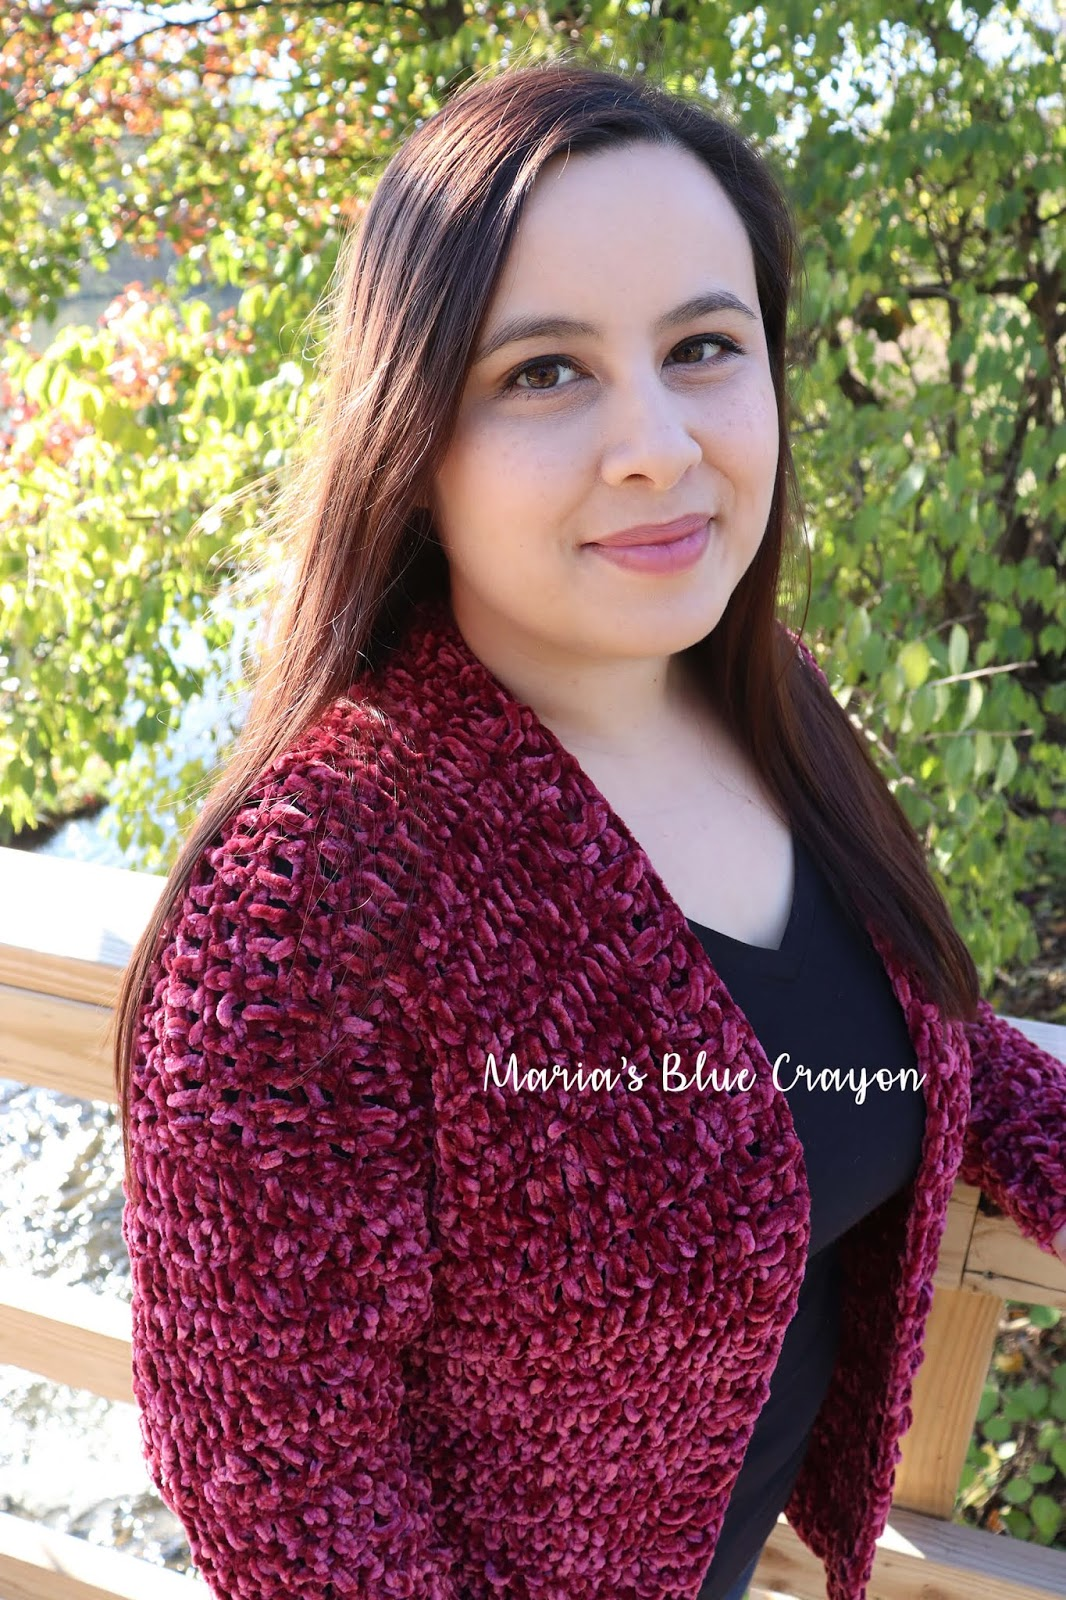 937b8302e The wonderful thing about this crochet velvet cardigan pattern is that it  is easy to make and uses only basic stitches and construction.